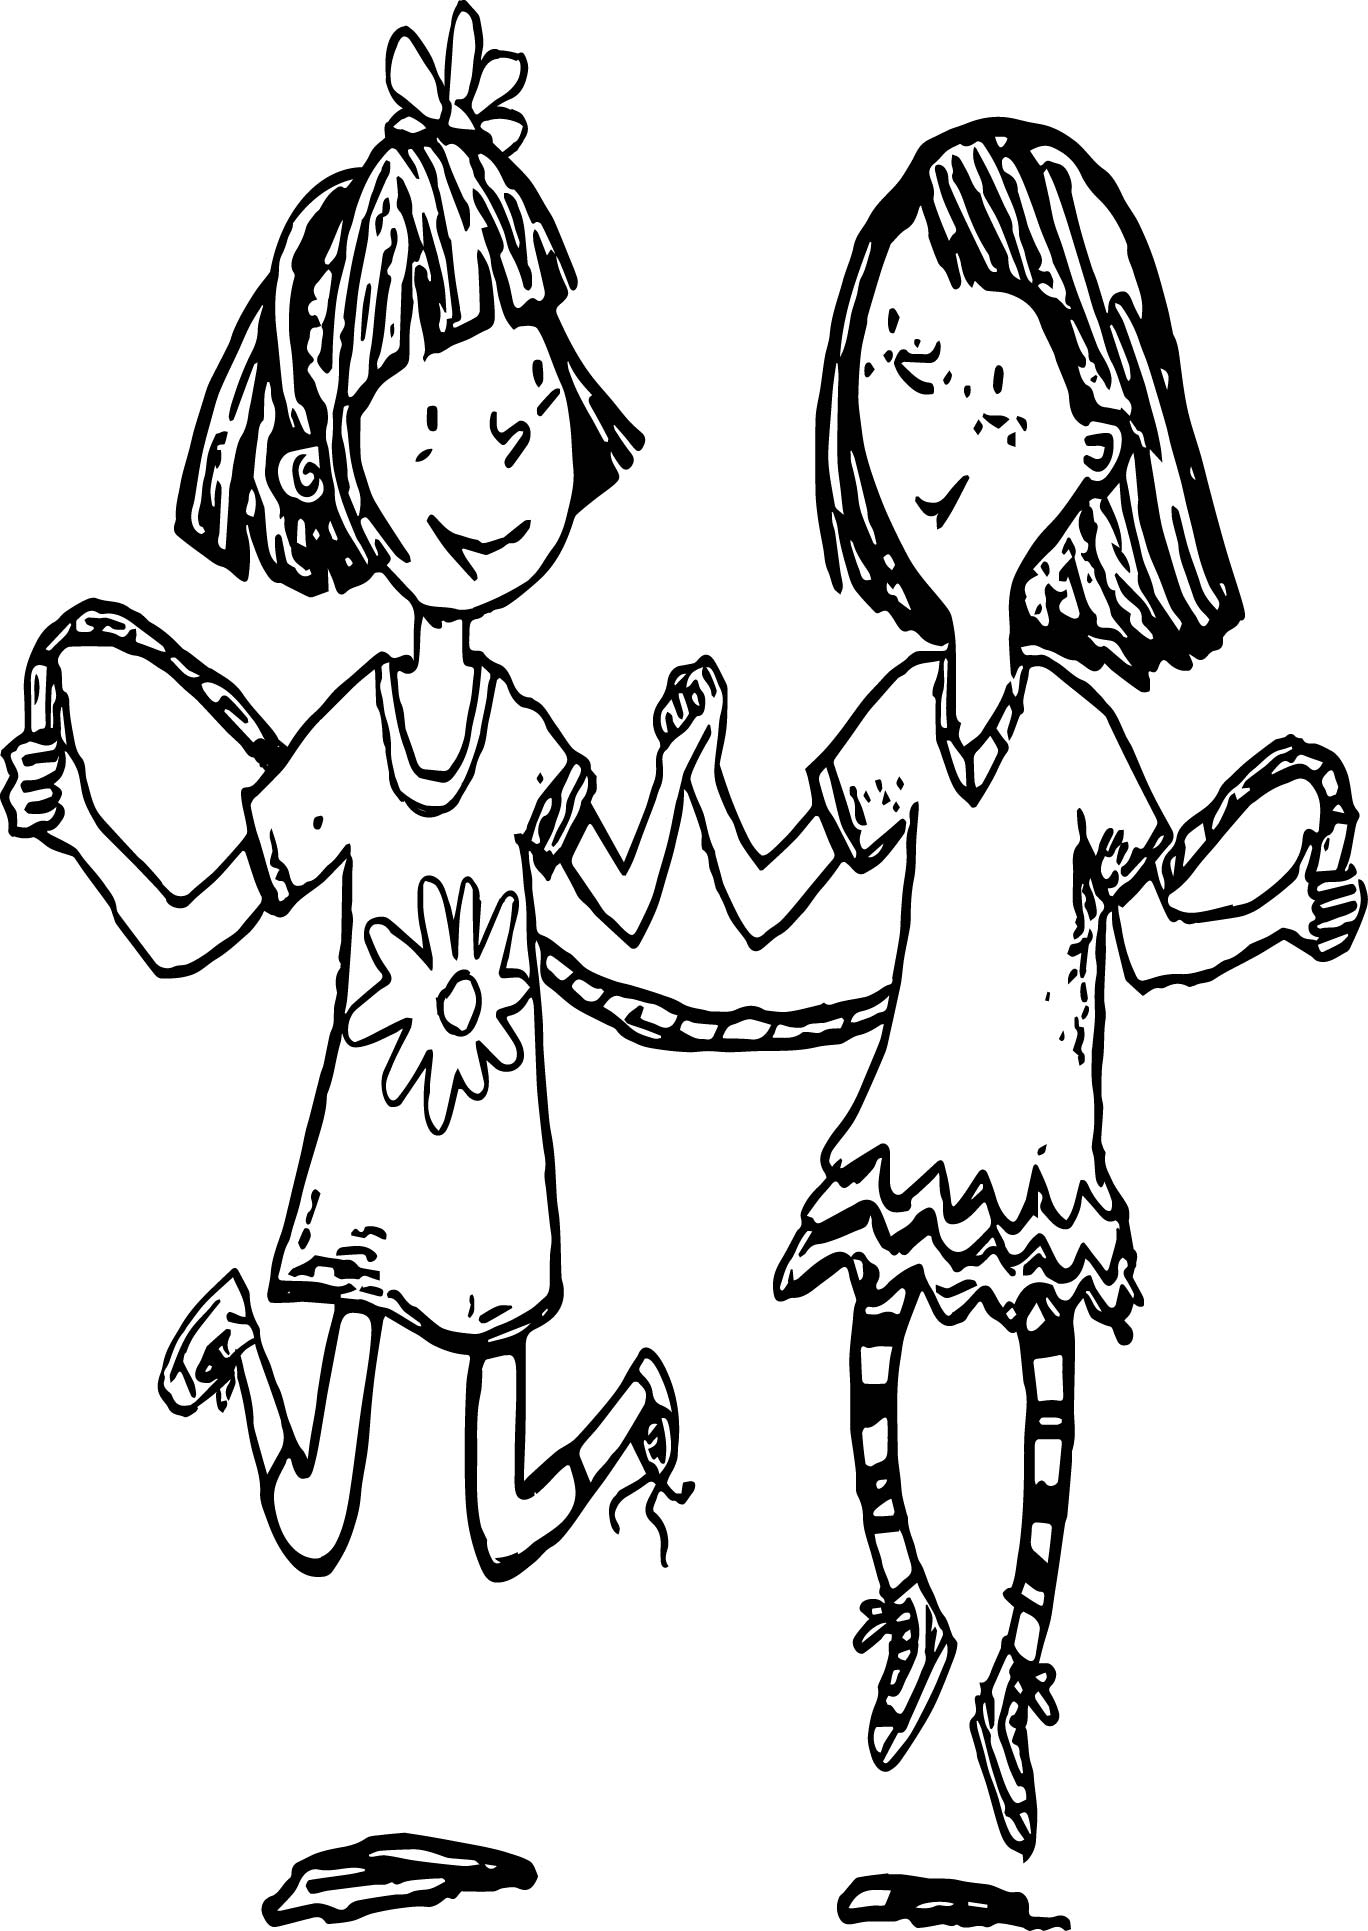 amelia bedelia coloring pages images for adults | Amelia Bedelia Jump Rope Coloring Page | Wecoloringpage.com